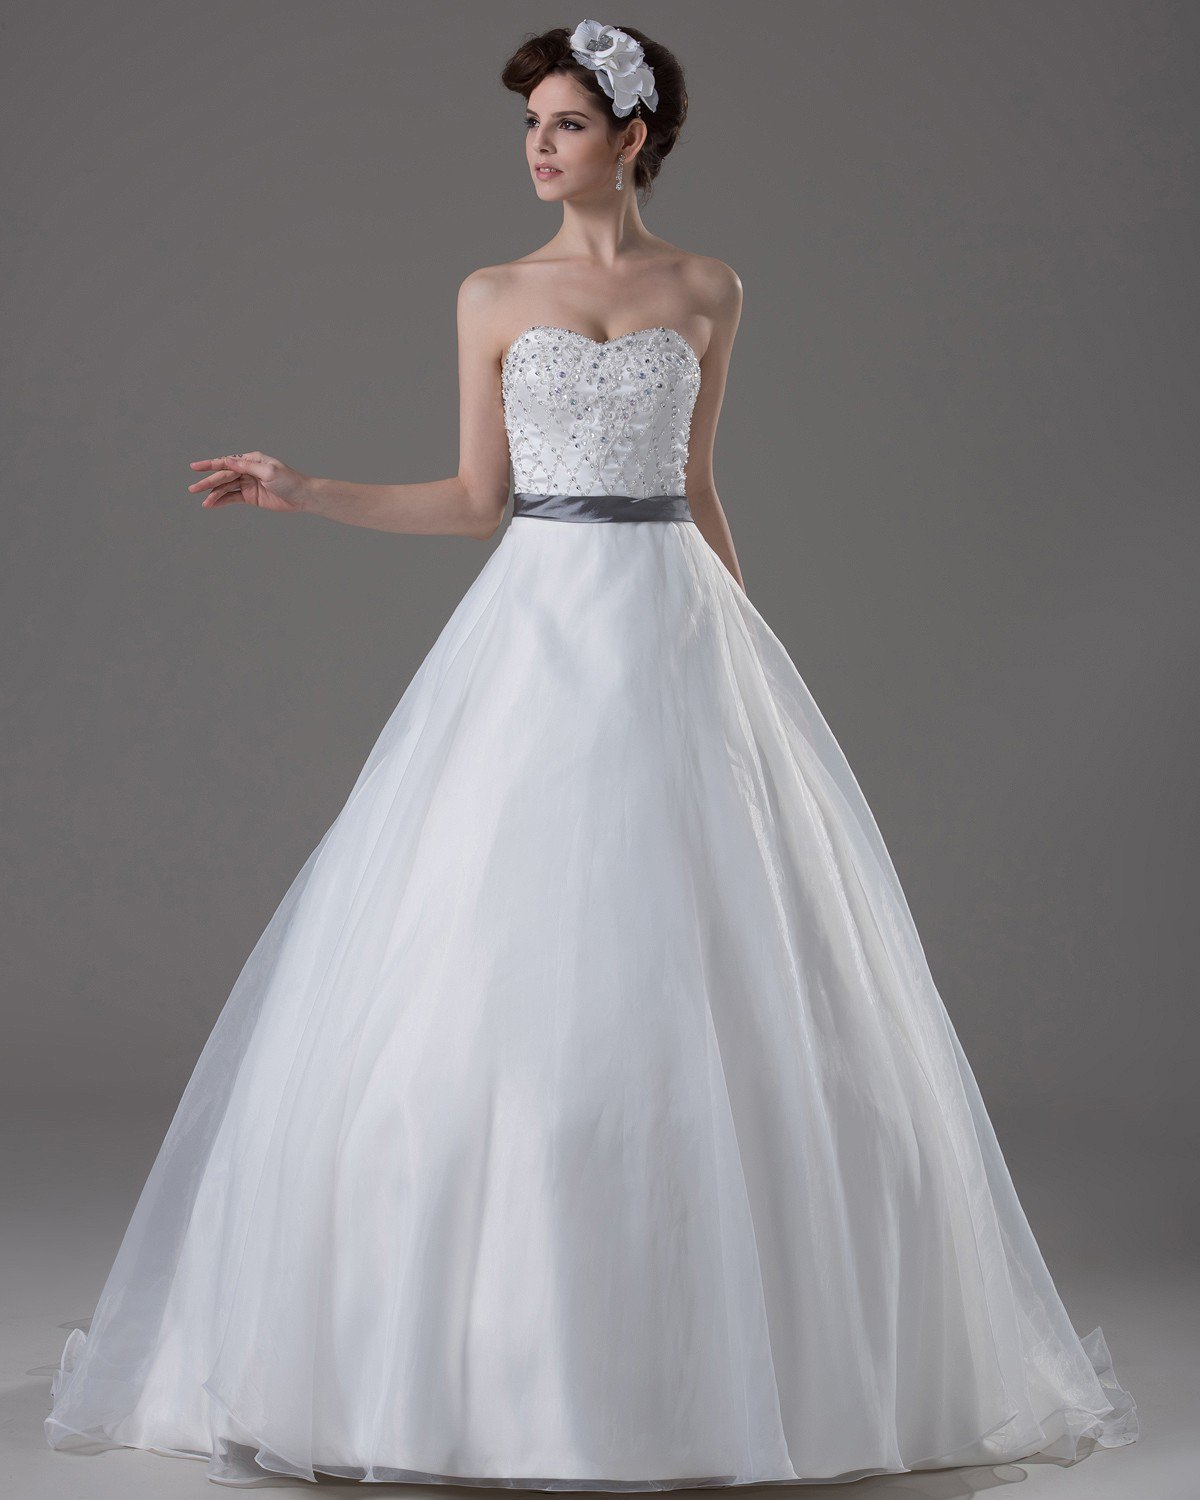 Sweetheart Beading Paillette Floor Length Yarn Ball Gown Wedding Dress